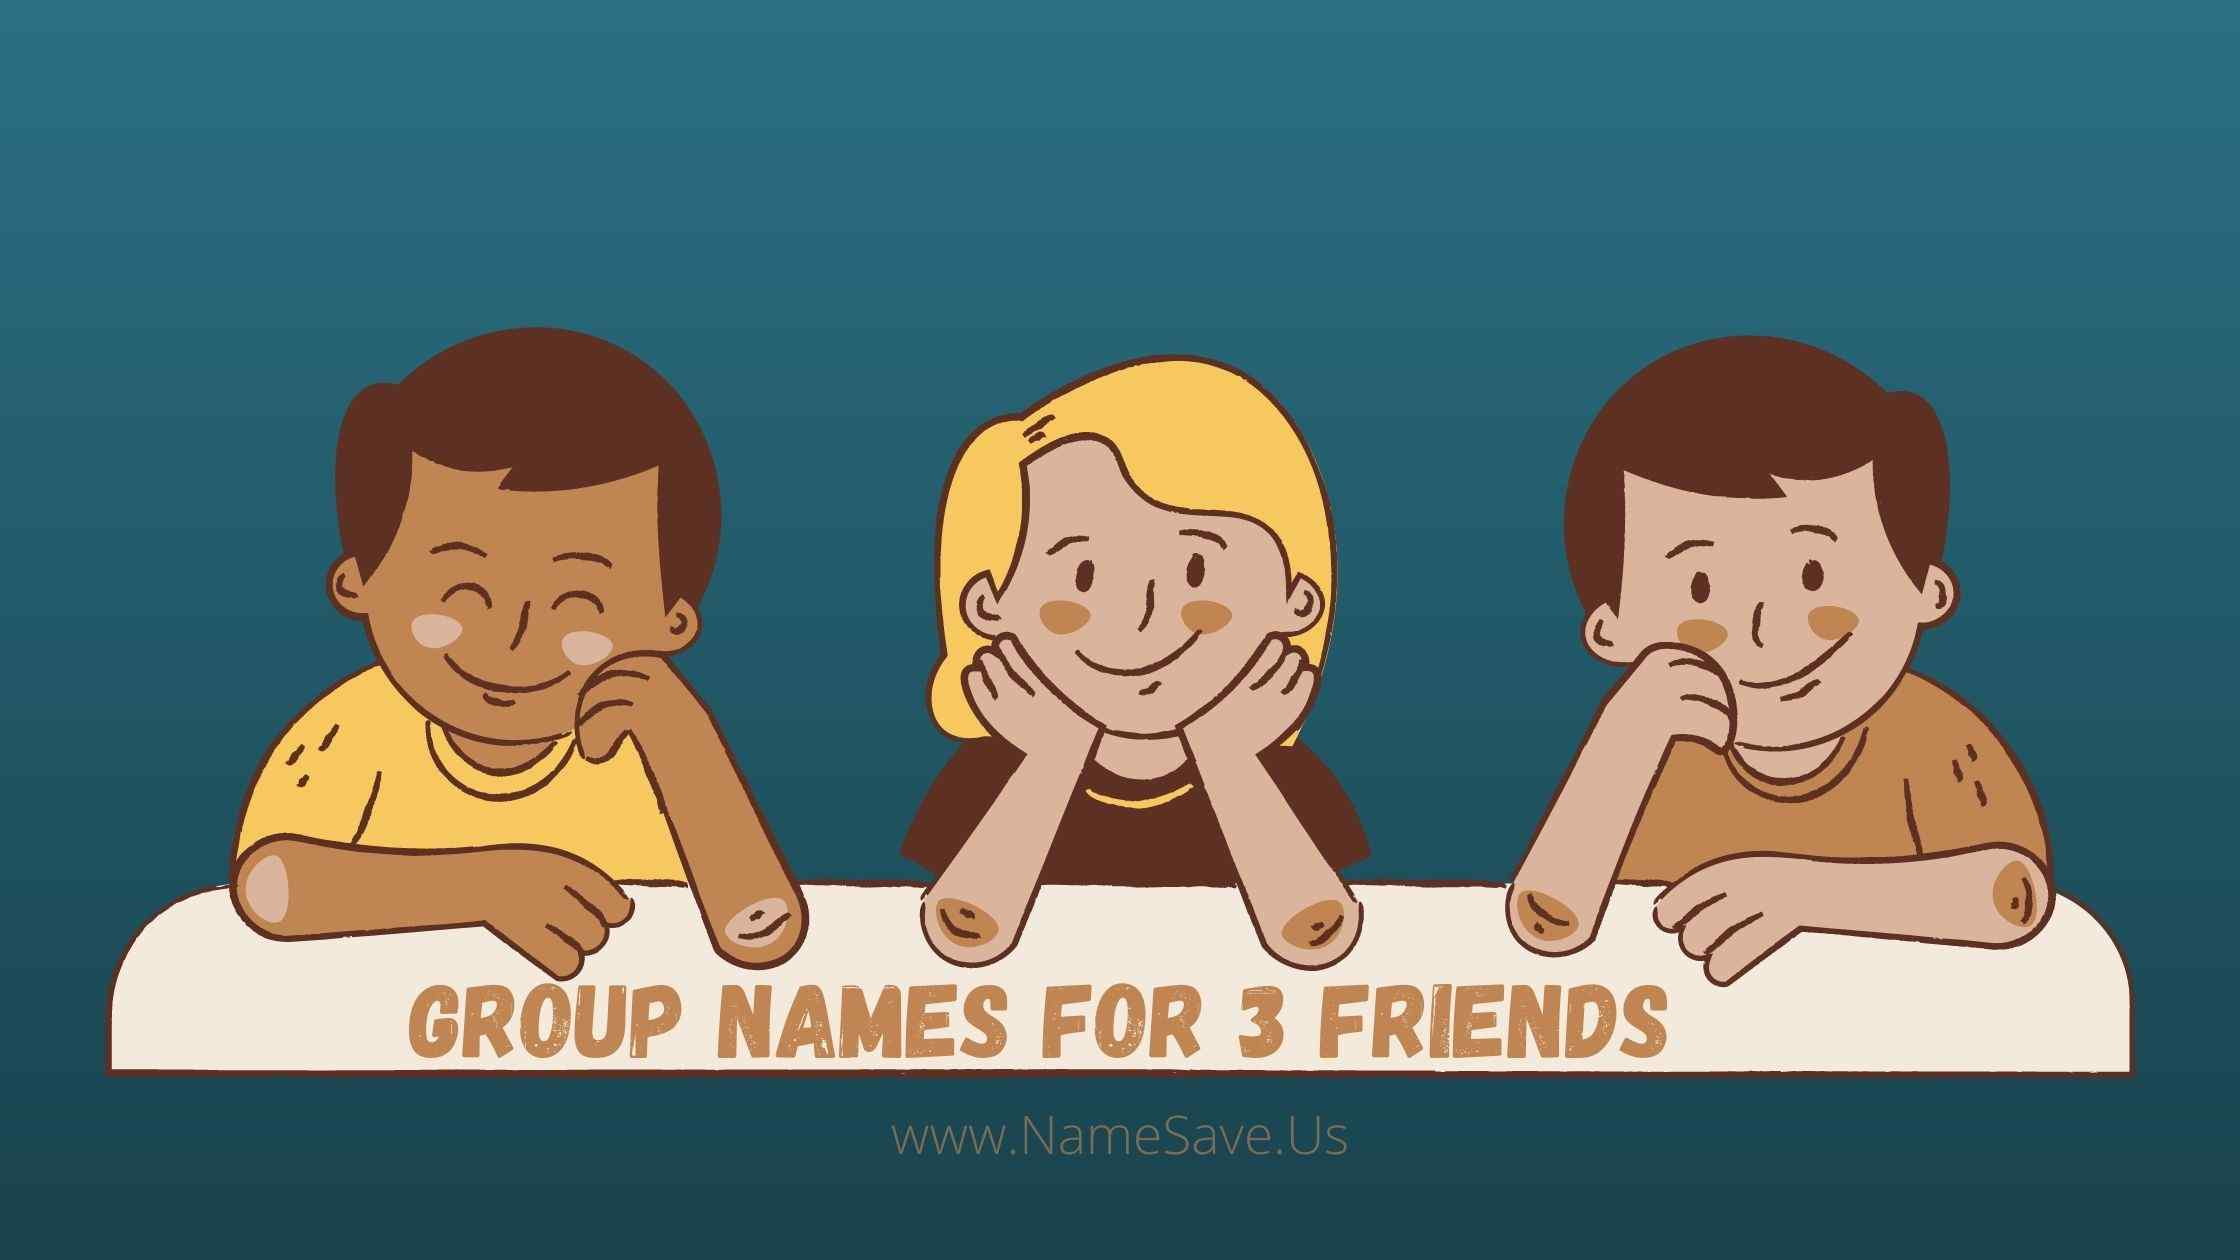 Group Names For 3 Friends, 3 friends group name